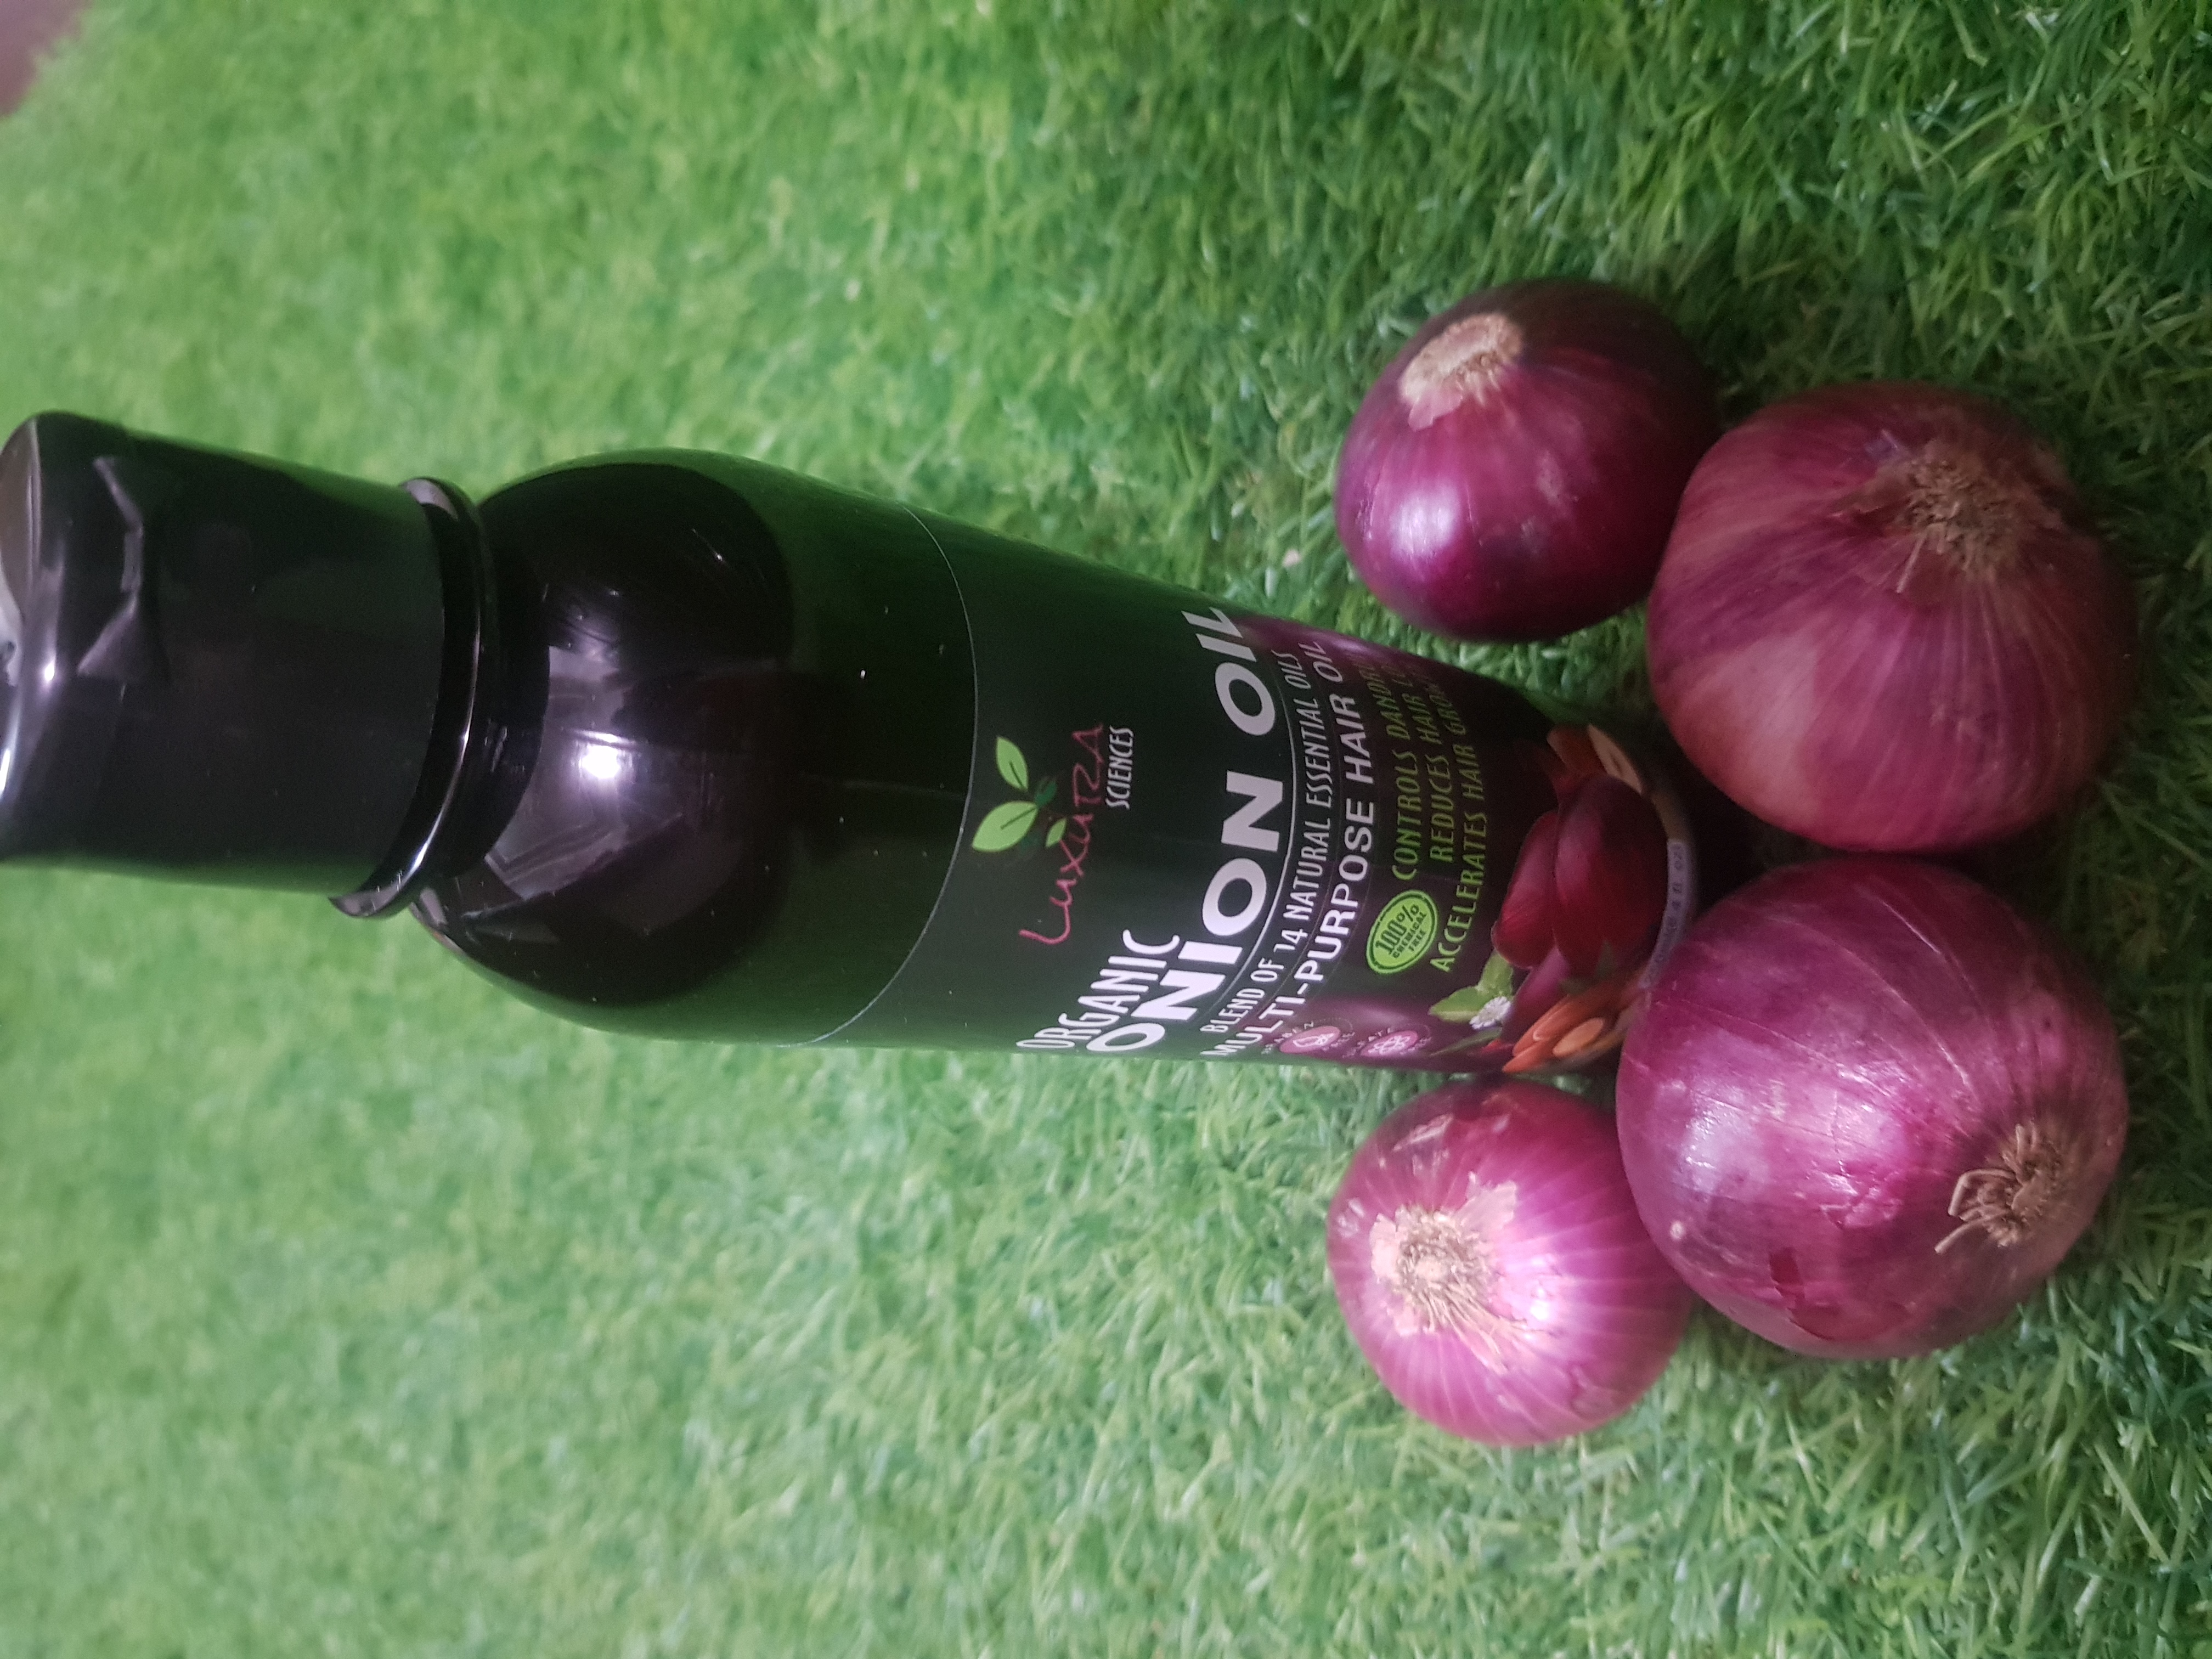 Luxura Sciences Advanced Onion Oil 250 ml-Makes hair manageable and frizz free!-By mridulakarora-2